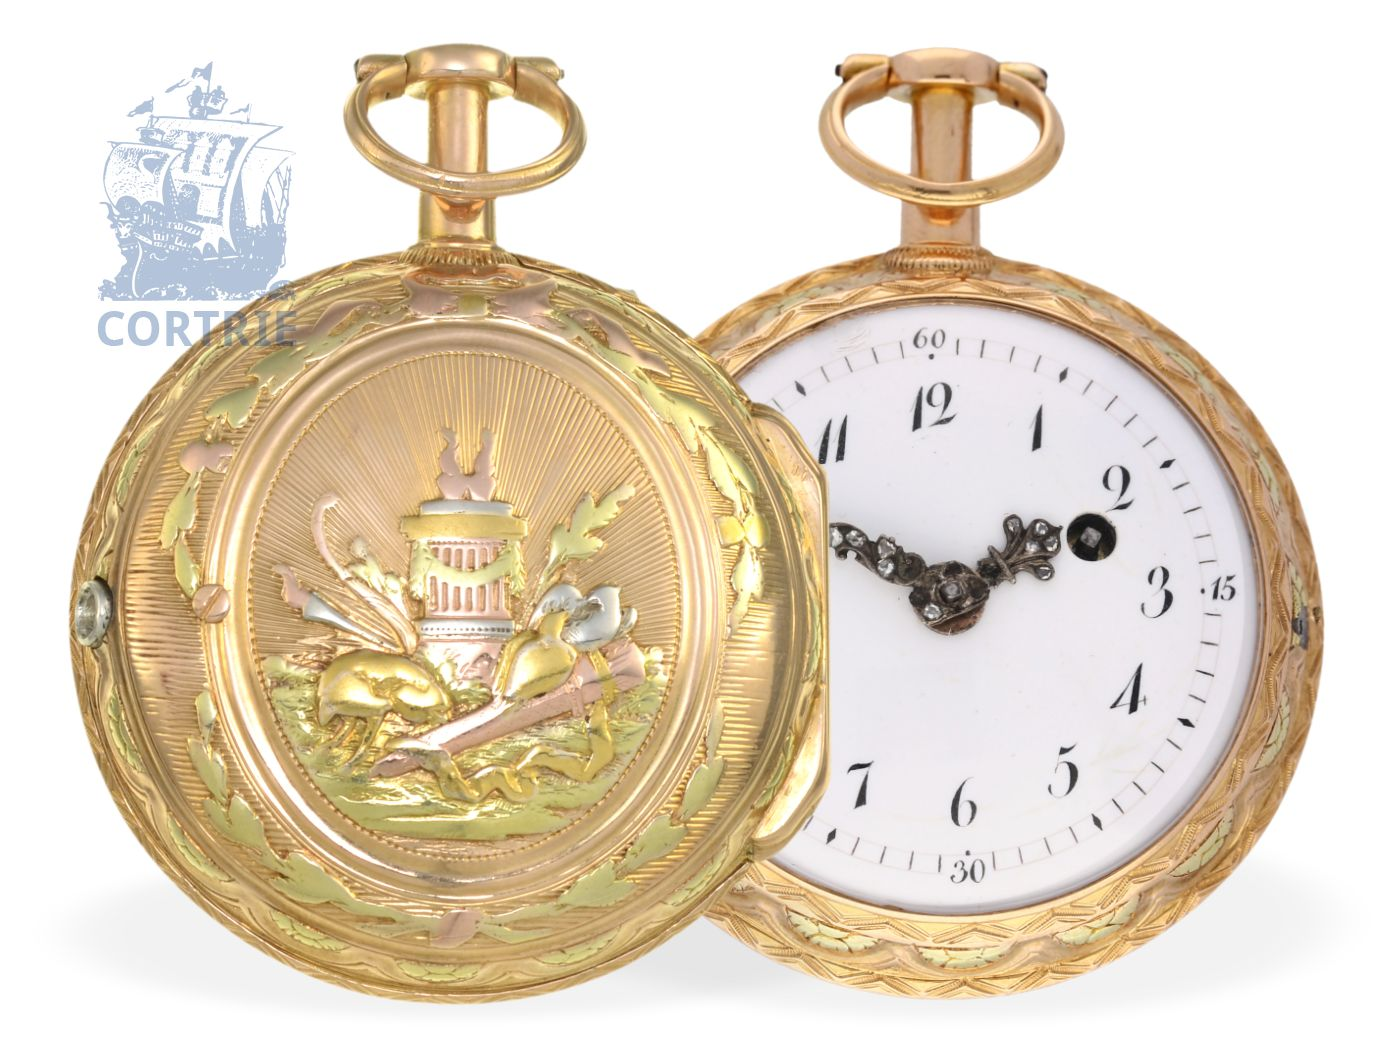 Pocket watch: rare and very beautiful 4-colored gold verge watch repeater, Mollard Grenoble ca. 1770-